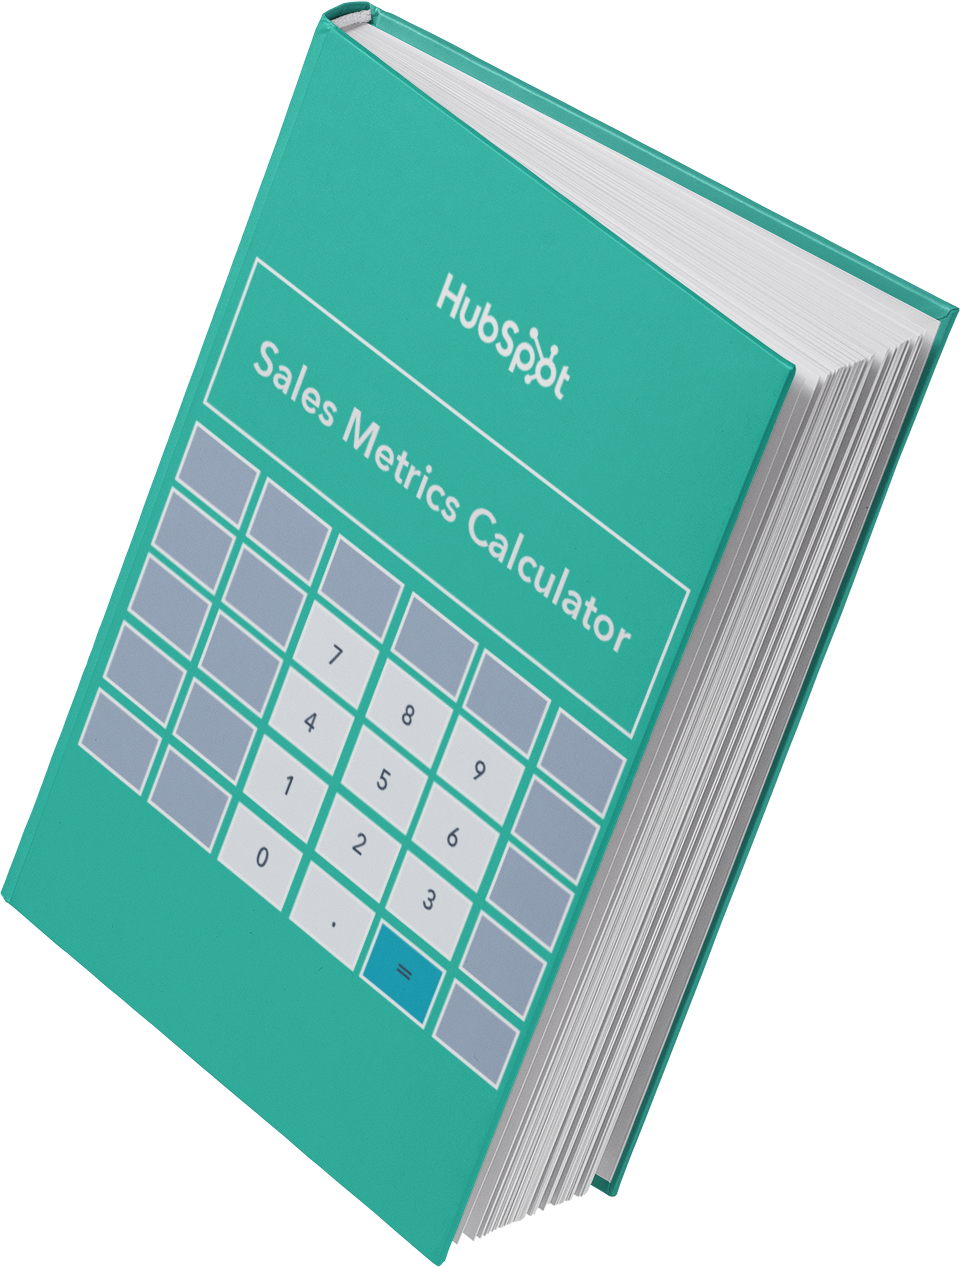 Sales Metrics Calculator